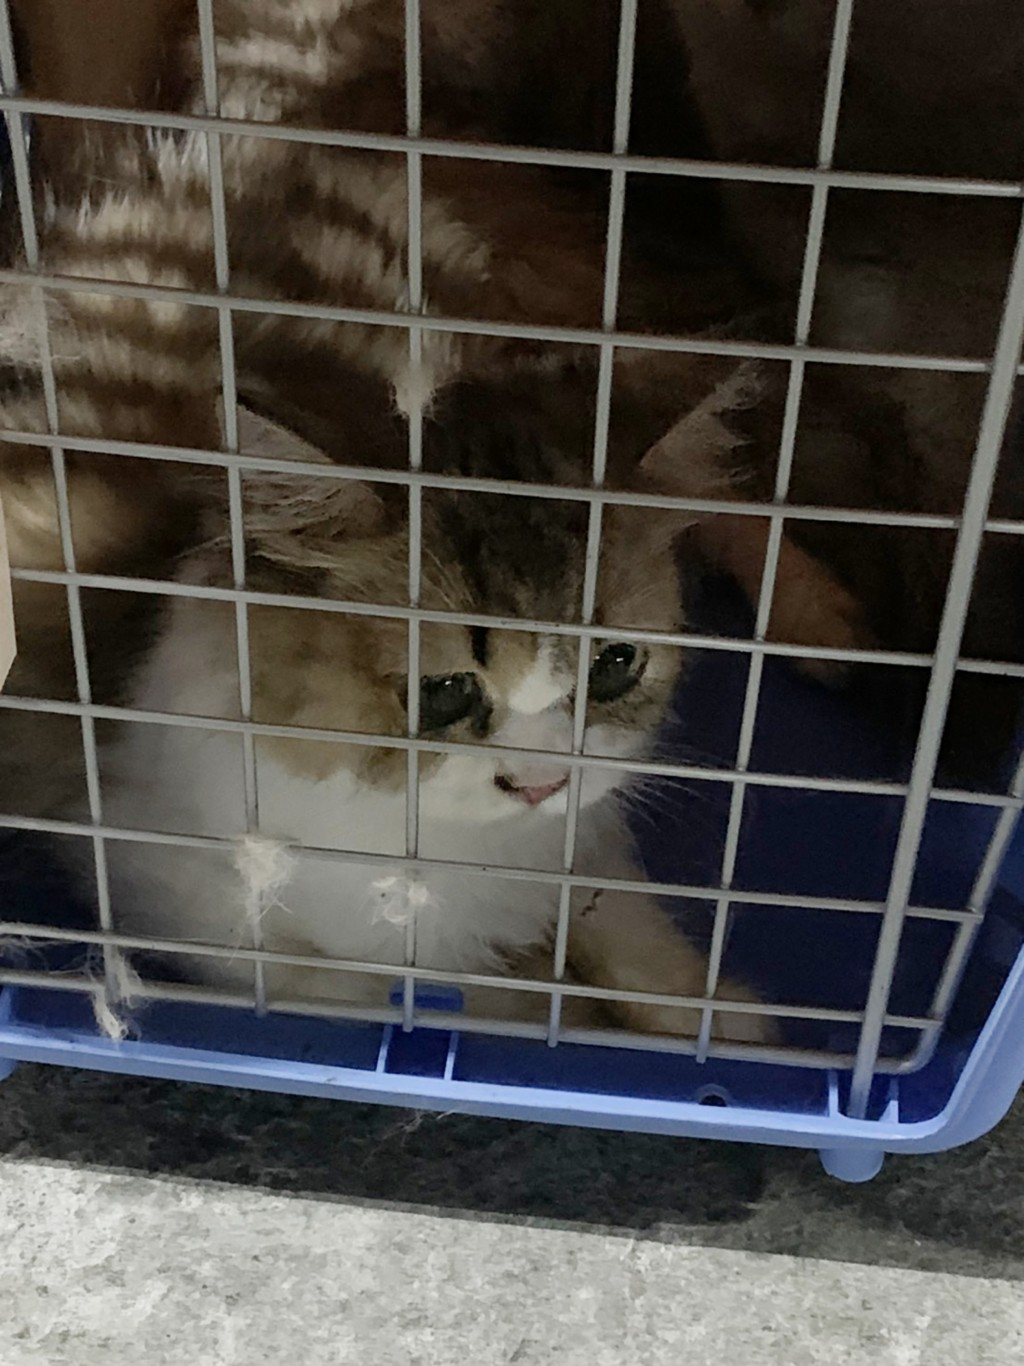 A kitten sits locked in a cage hours before it was put to death on Saturday (Aug. 22).